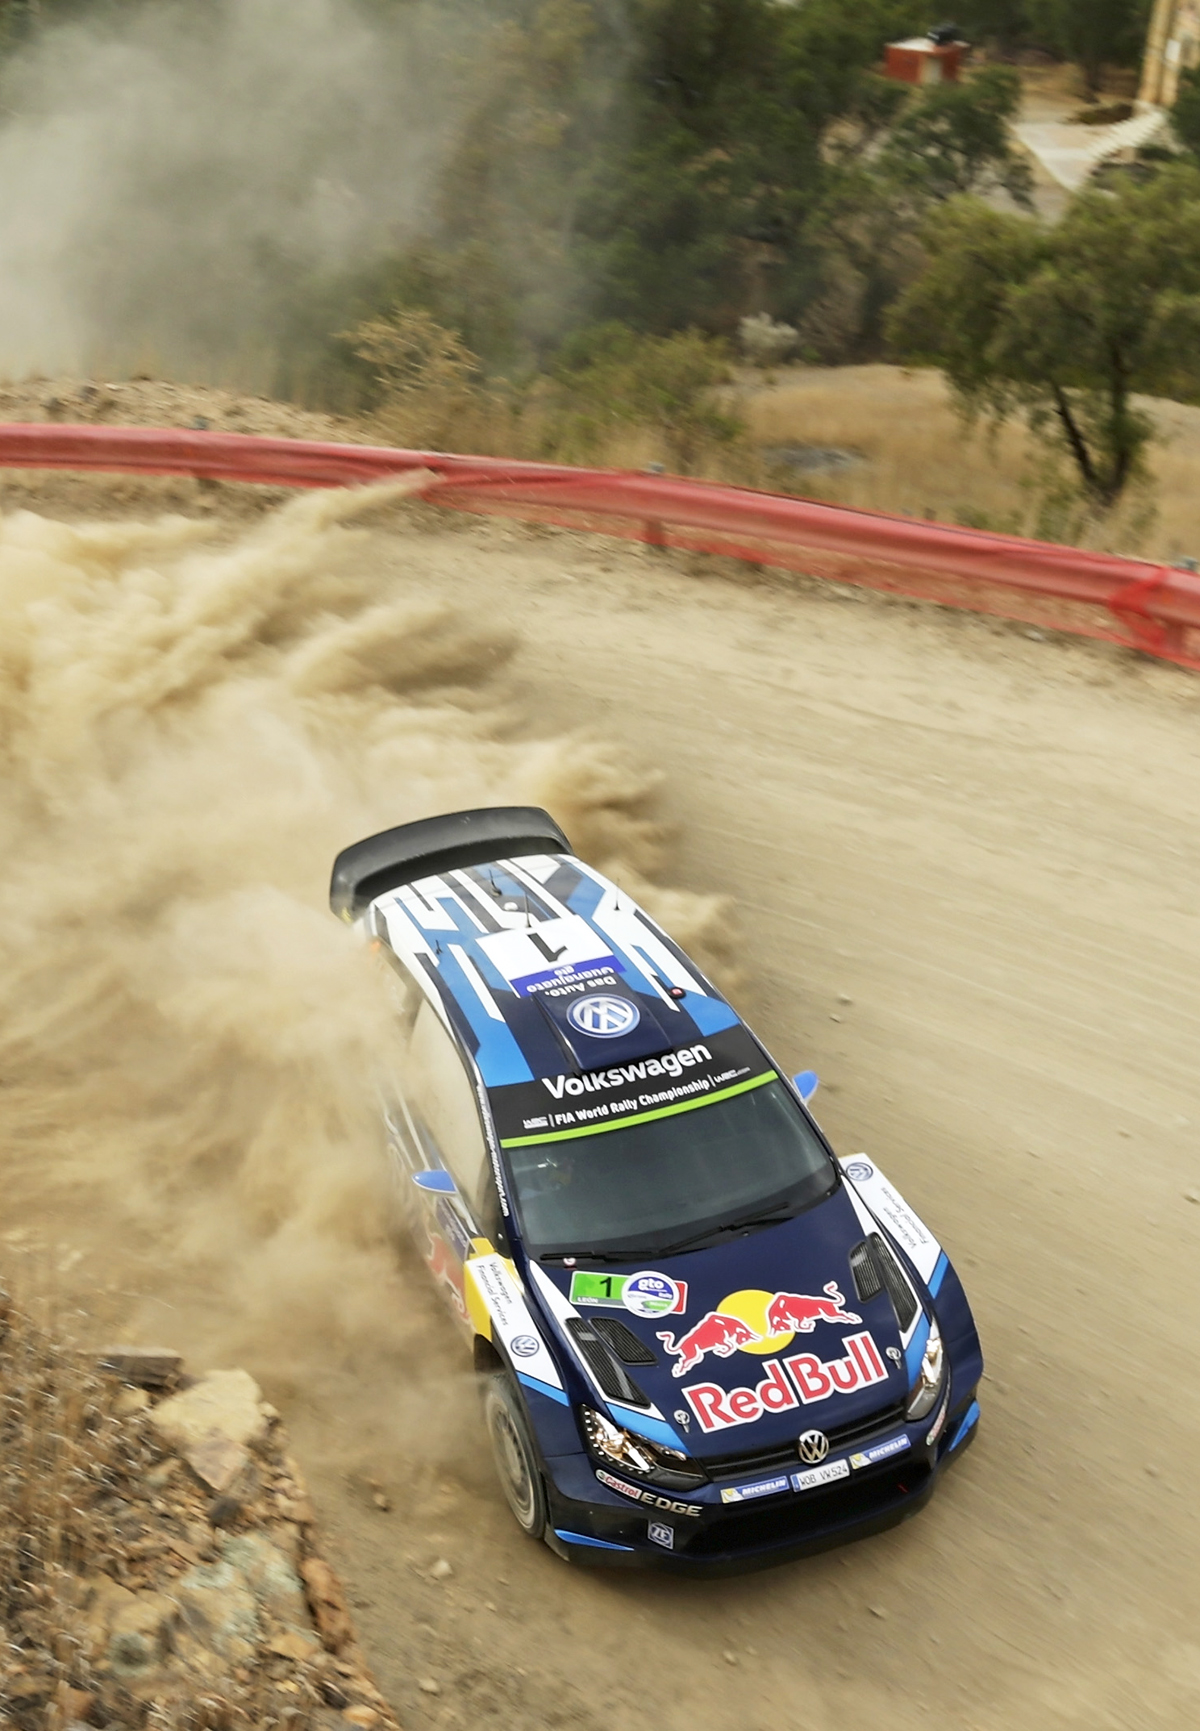 FIA WORLD RALLY CHAMPIONSHIP (WRC) 2015: OGIER SHOWS HIS CLASS TO PULL CLEAR OF RIVALS AFTER SECOND DAY OF RALLY MEXICO